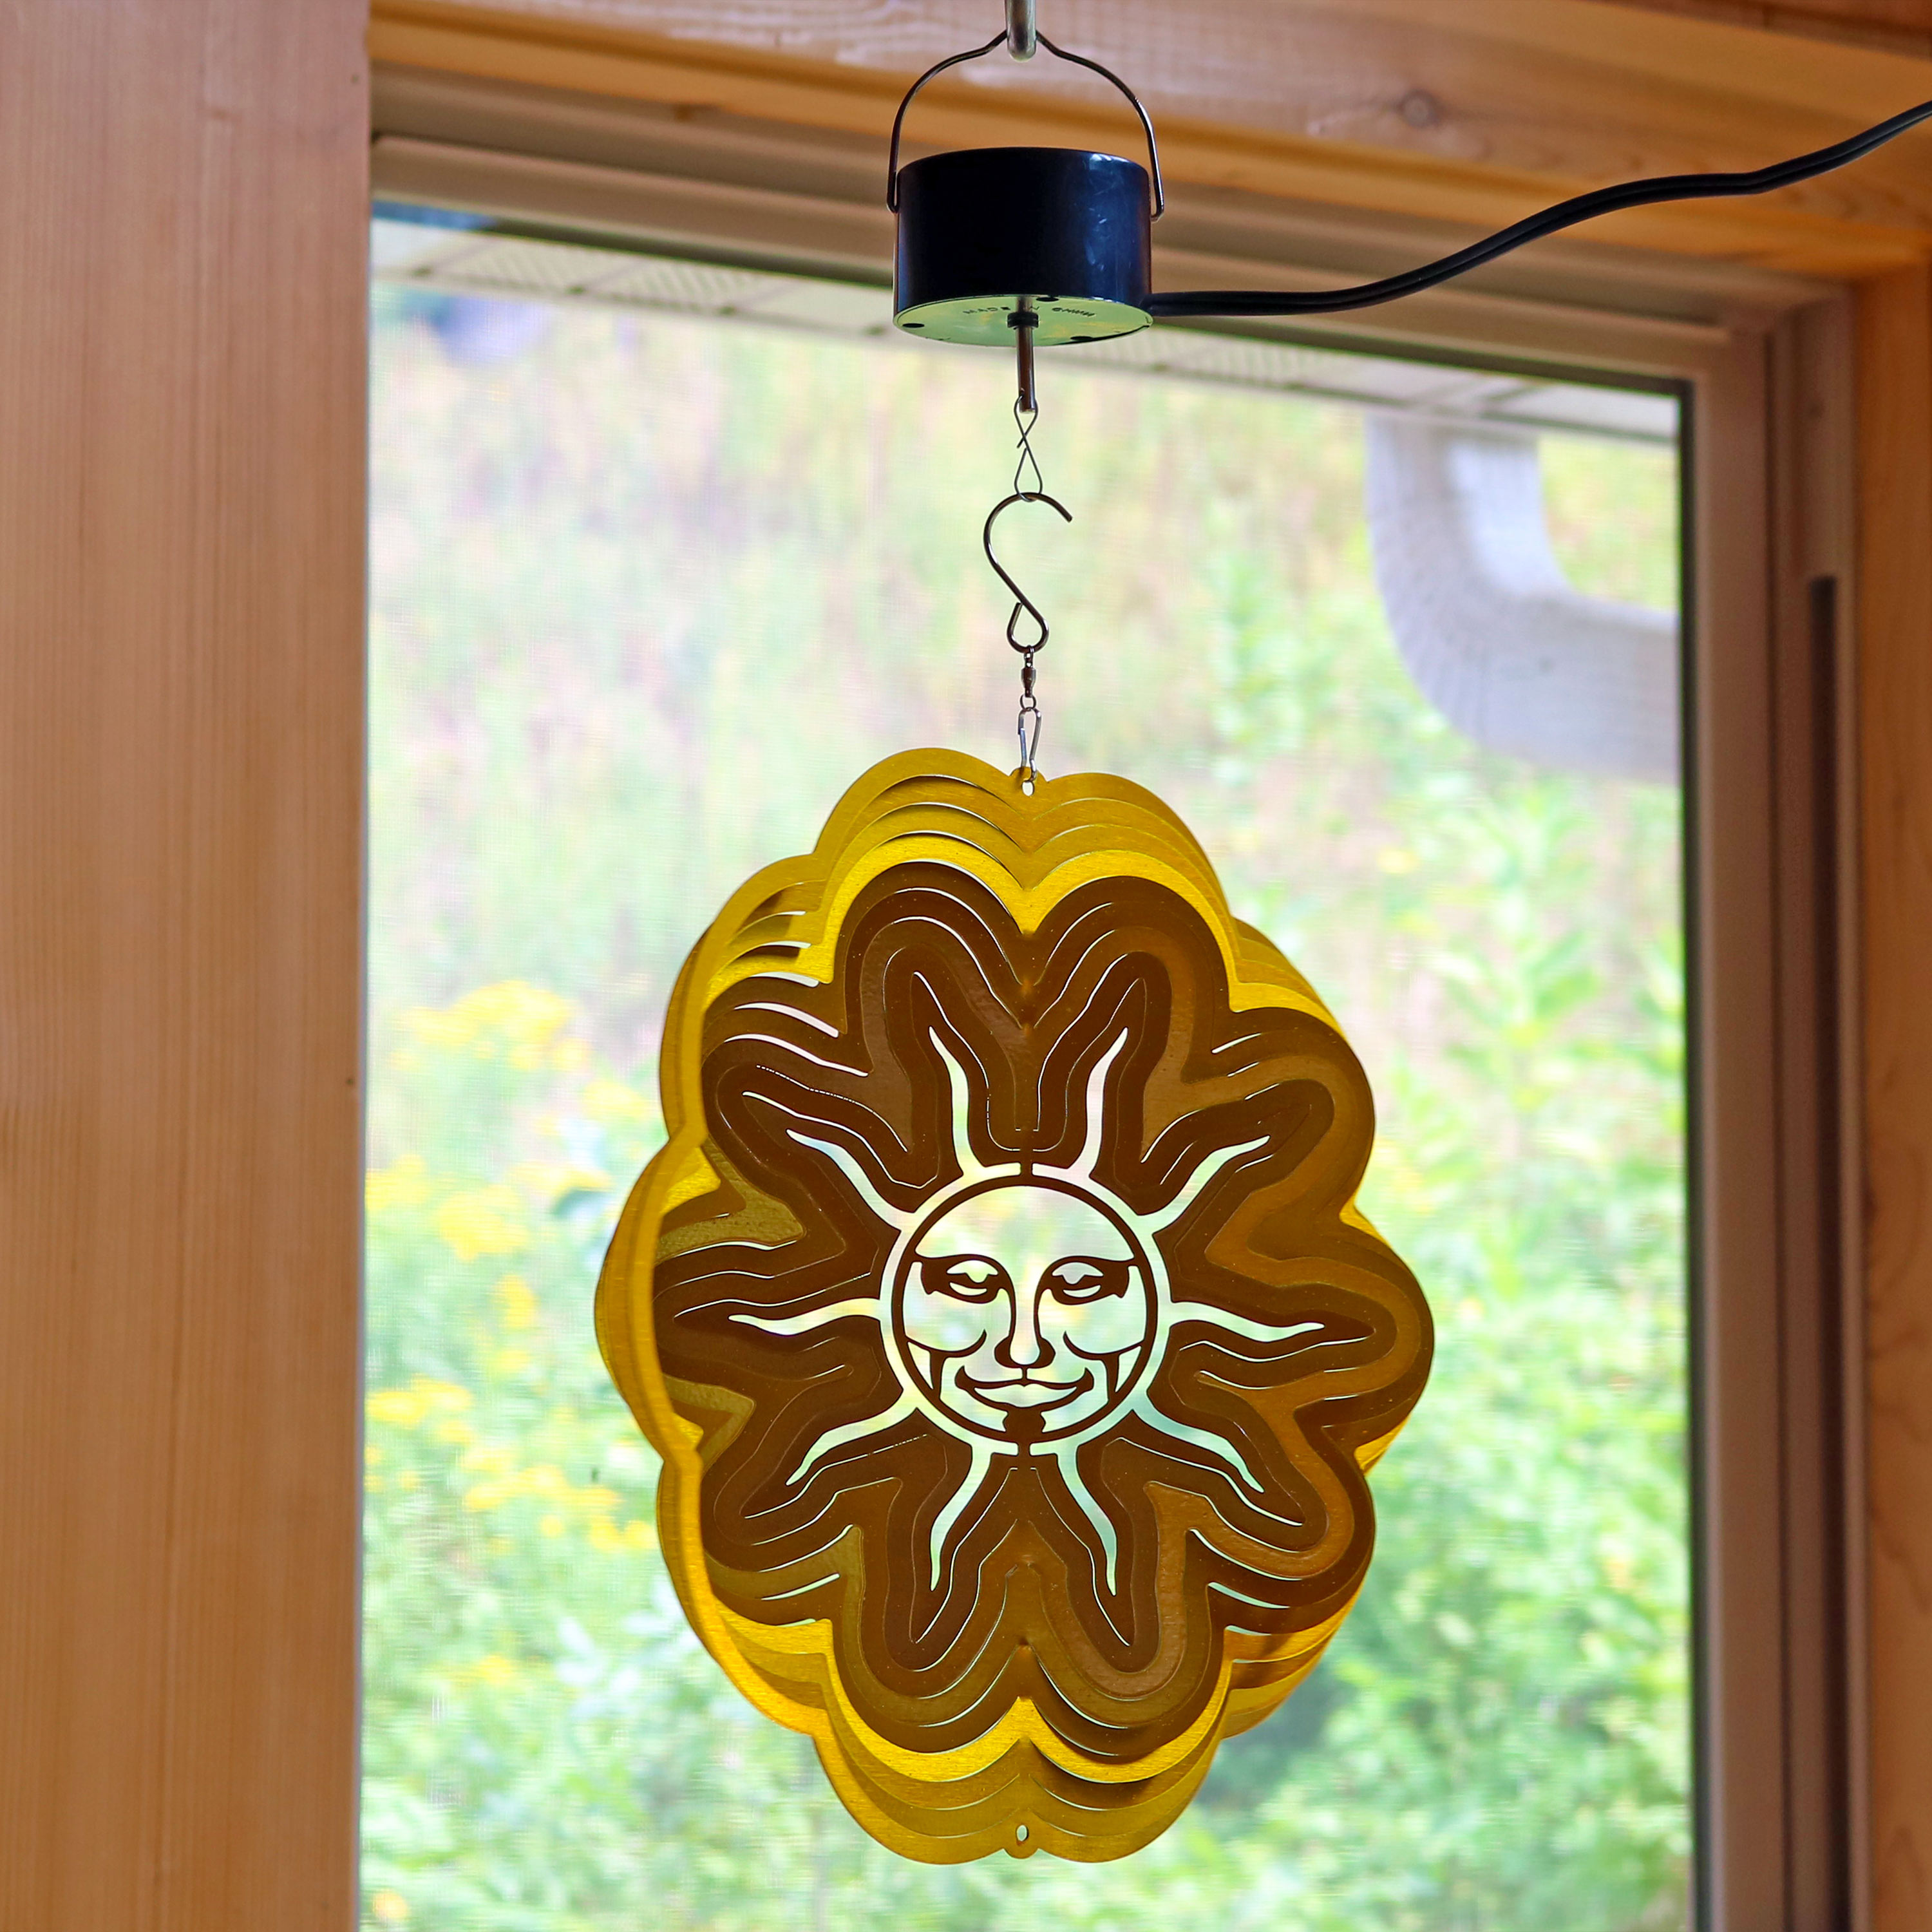 Sunnydaze 3D Sun Wind Spinner with Hook, 12-Inch, Yes, Corded Electric Motor